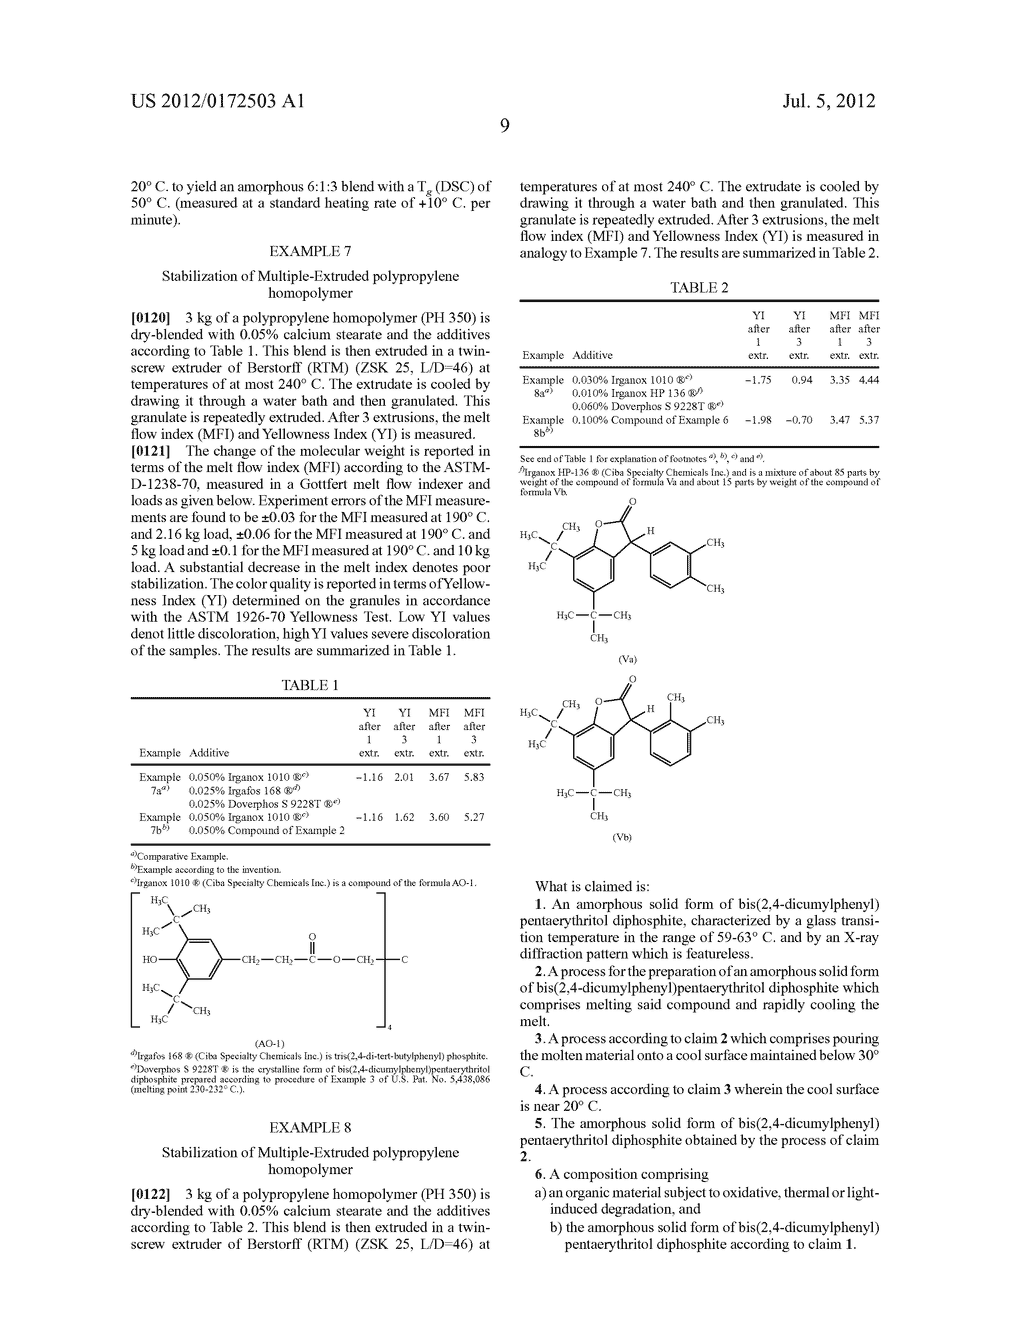 AMORPHOUS SOLID MODIFICATION OF BIS(2,4-DICUMYLPHENYL) PENTAERYTHRITOL     DIPHOSPHITE - diagram, schematic, and image 10